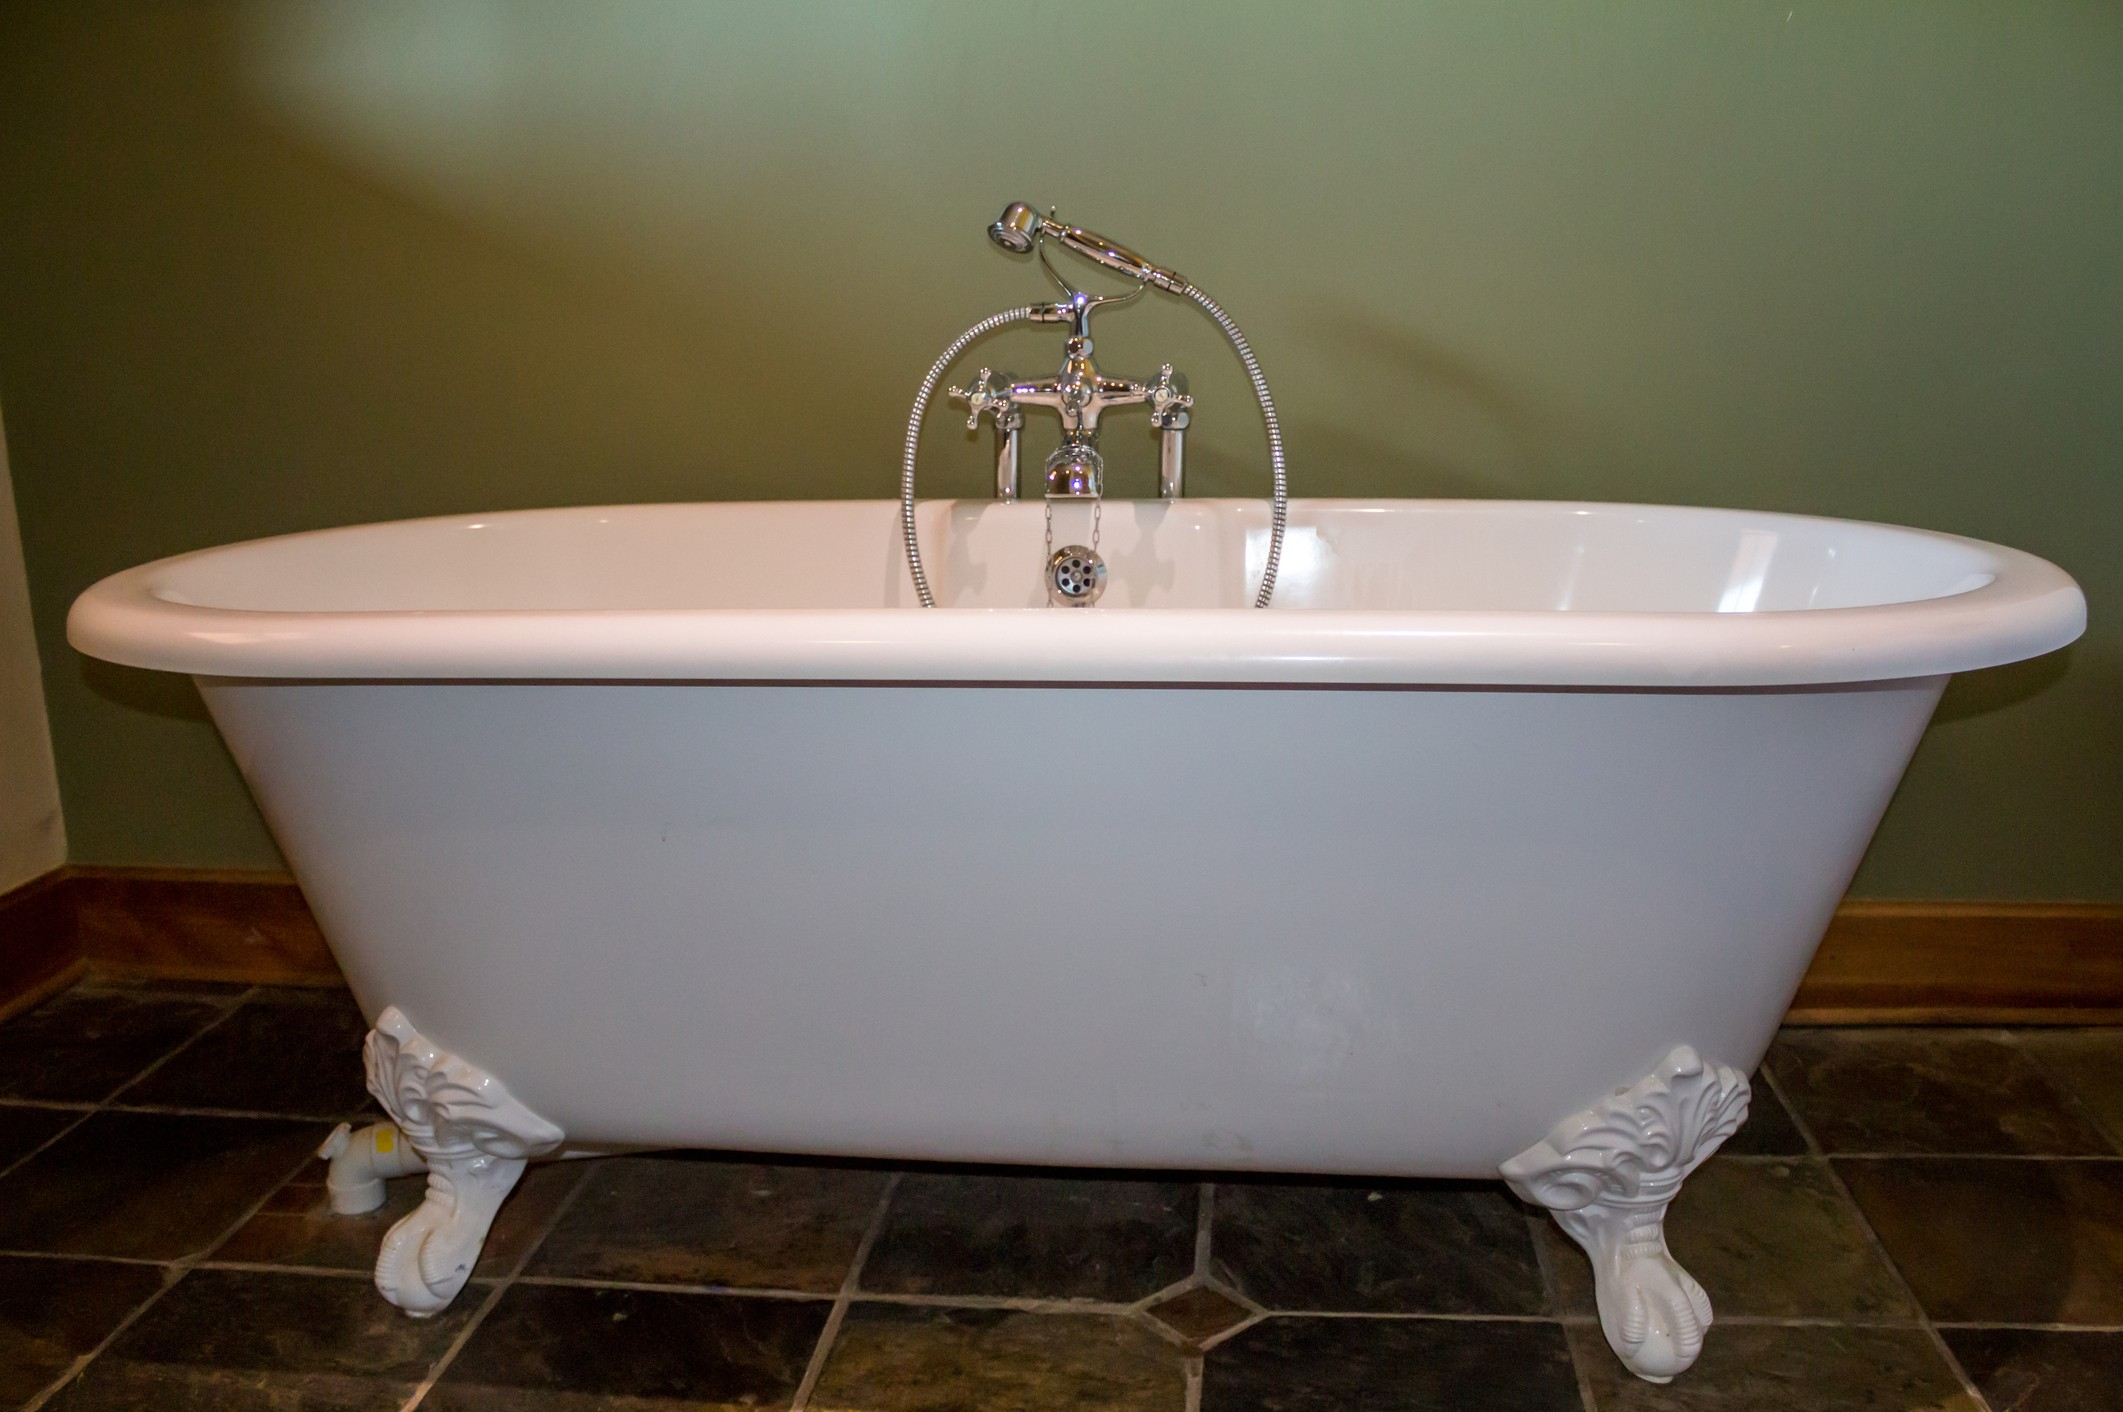 Why You Shouldn\'t Install a Clawfoot Tub in Your Home